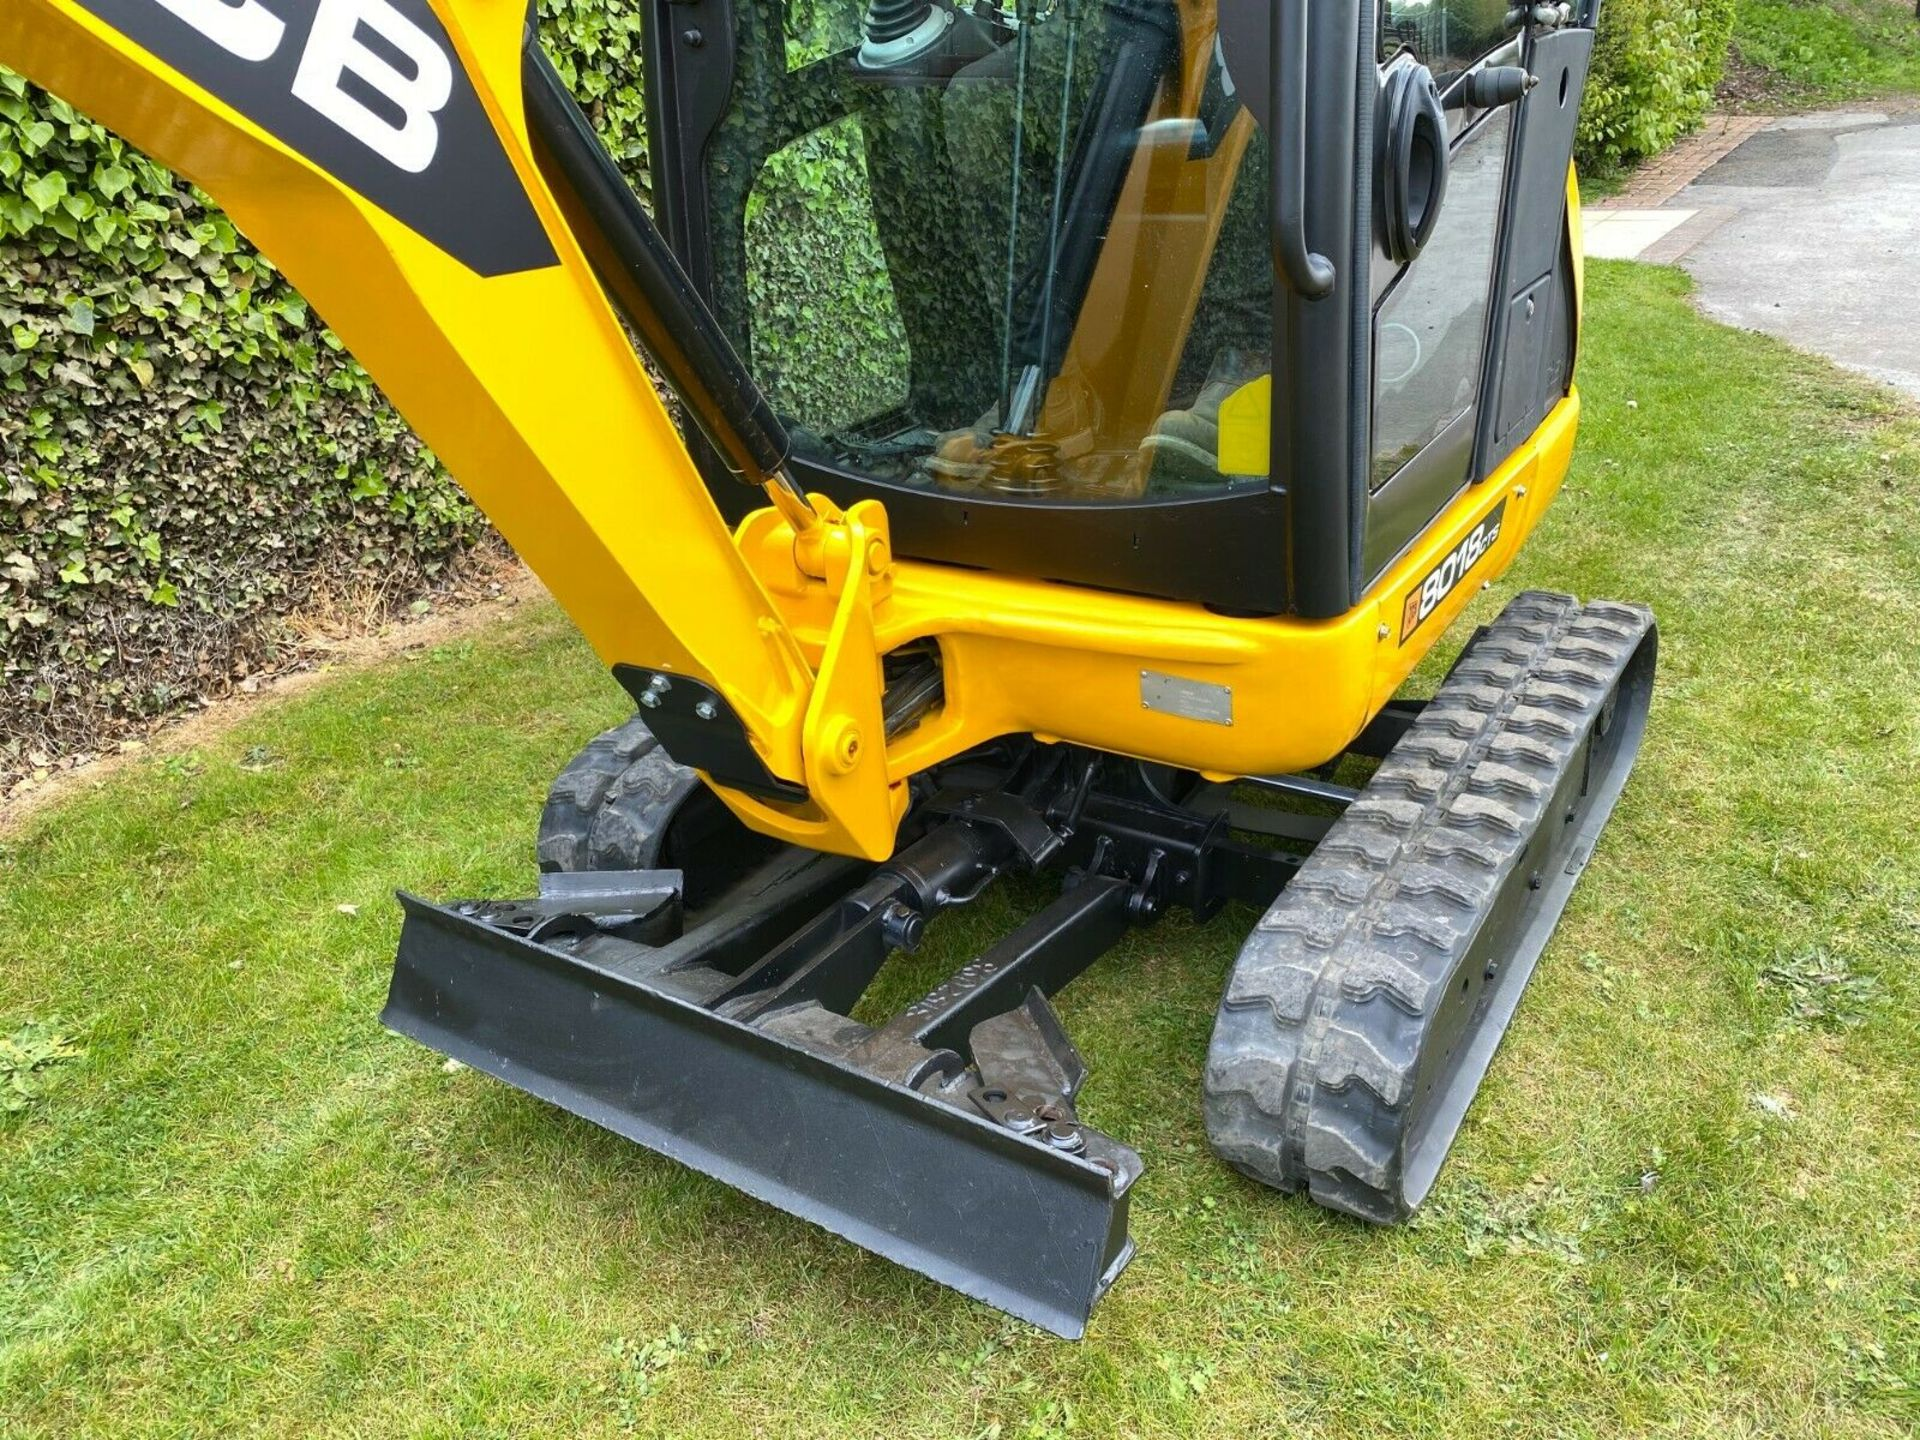 Lot 30 - JCB 8018 CTS MINI DIGGER, YEAR 2012, ONLY 1680 HOURS, C/W 3 BUCKETS, EXPANDING TRACKS, QUICK HITCH